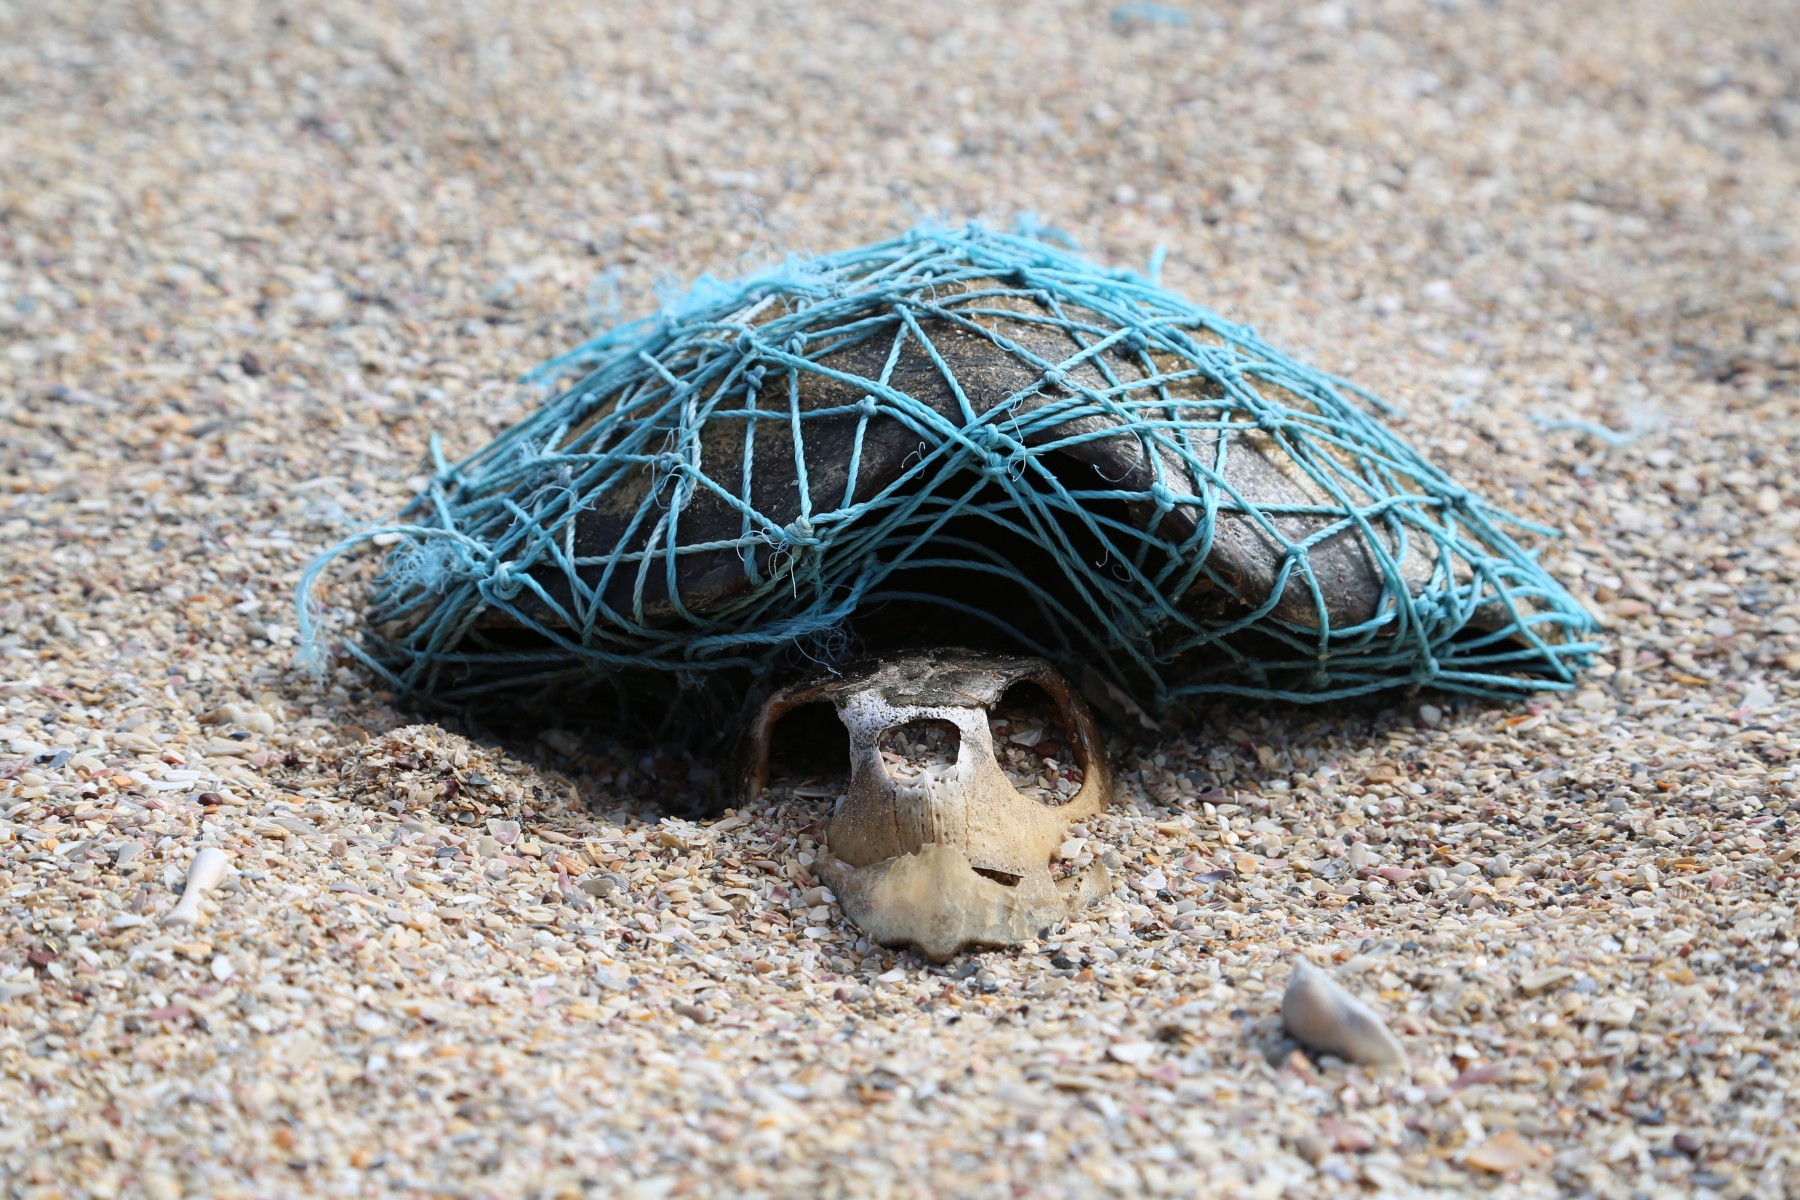 Turtle skeleton wrapped in ghost gear.